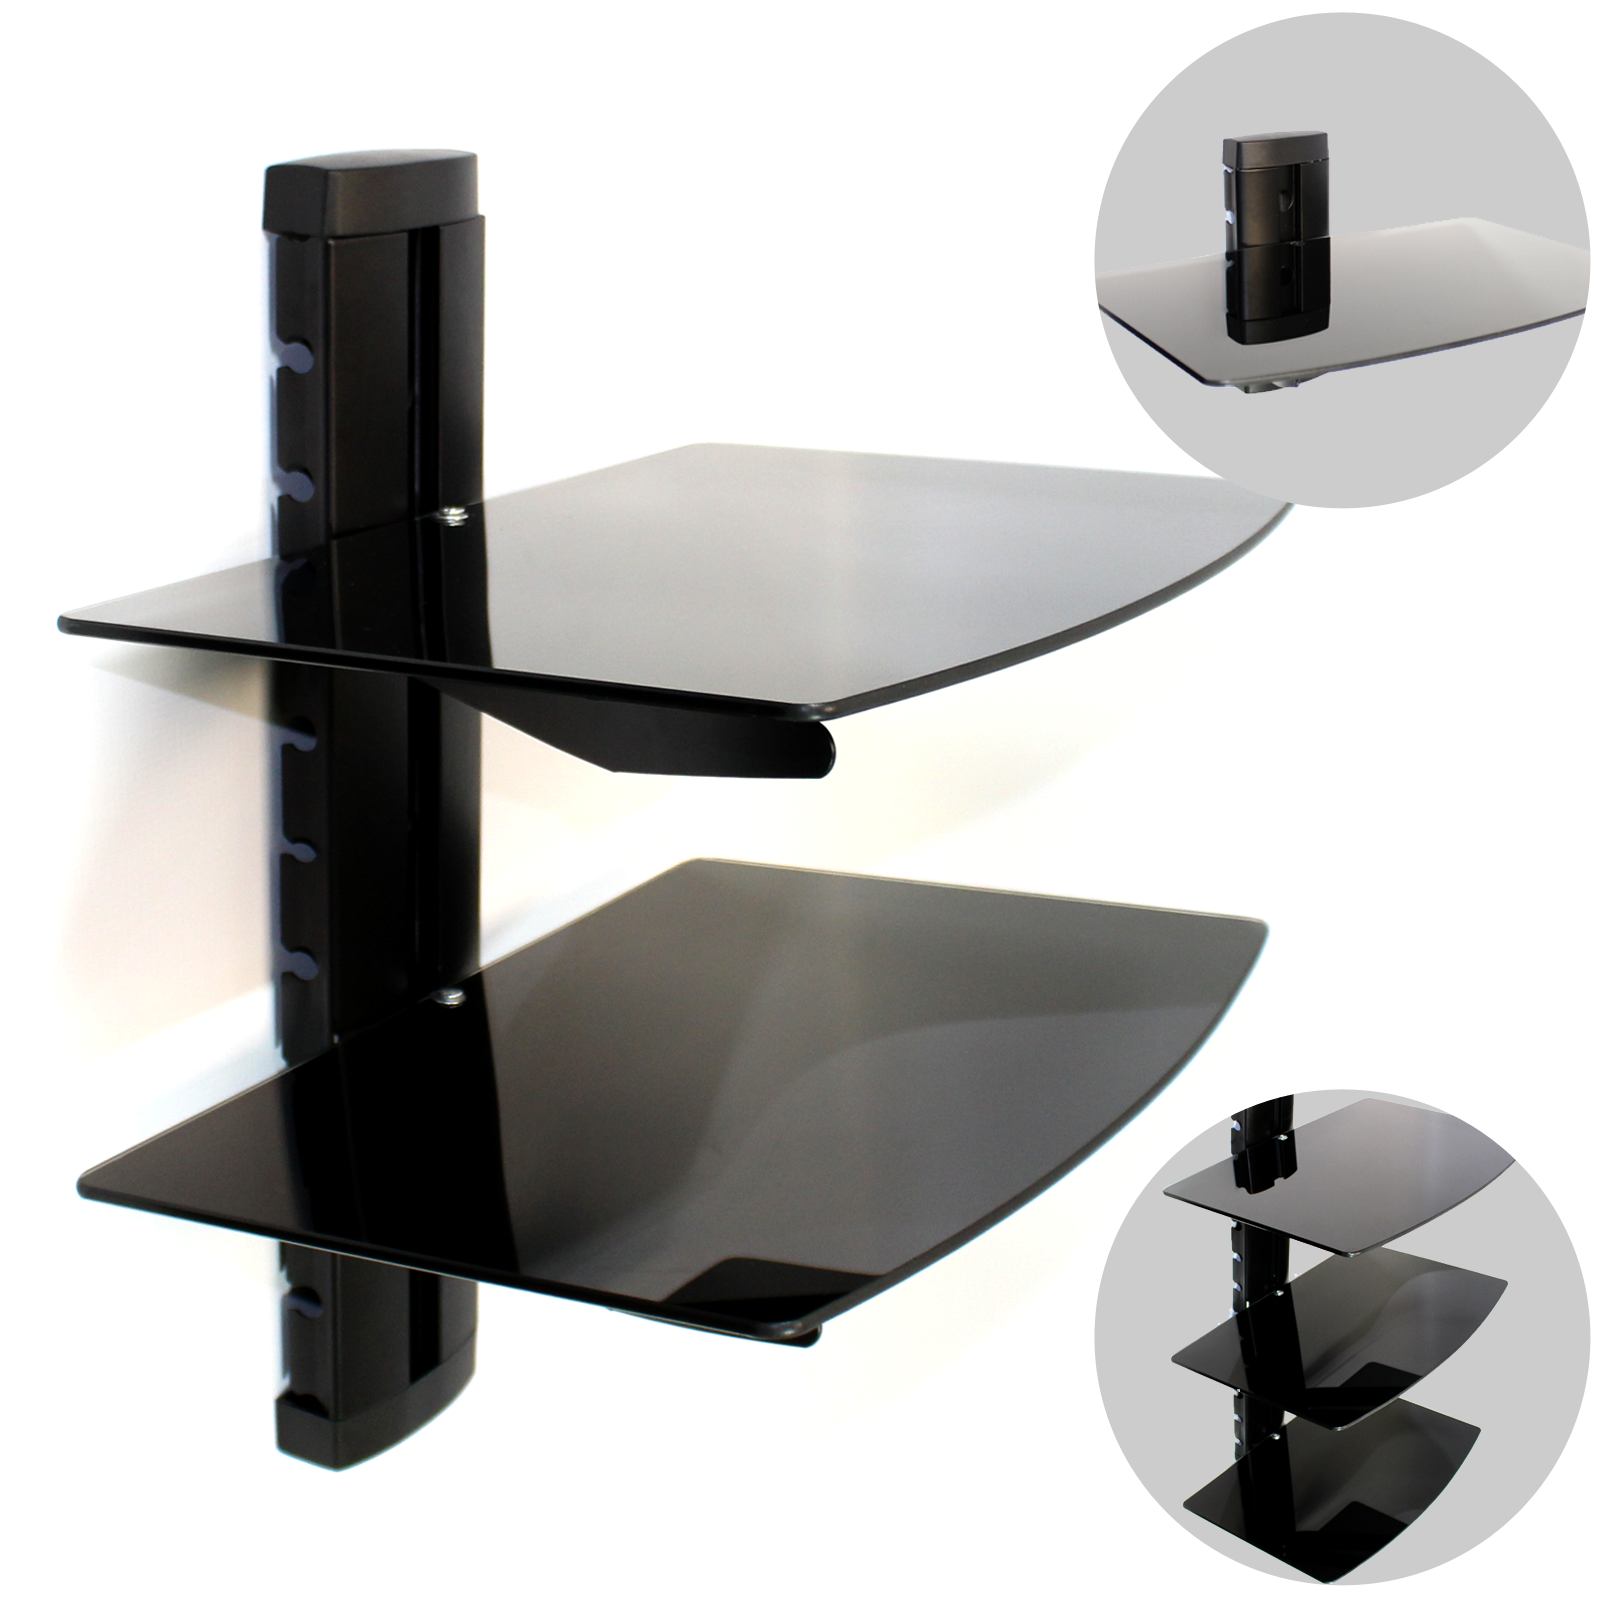 tempered black glass floating shelf wall mount consoles dvd players dry food storage cabinets that goes over toilet kitchen countertops for player shower plug the cabinet secret